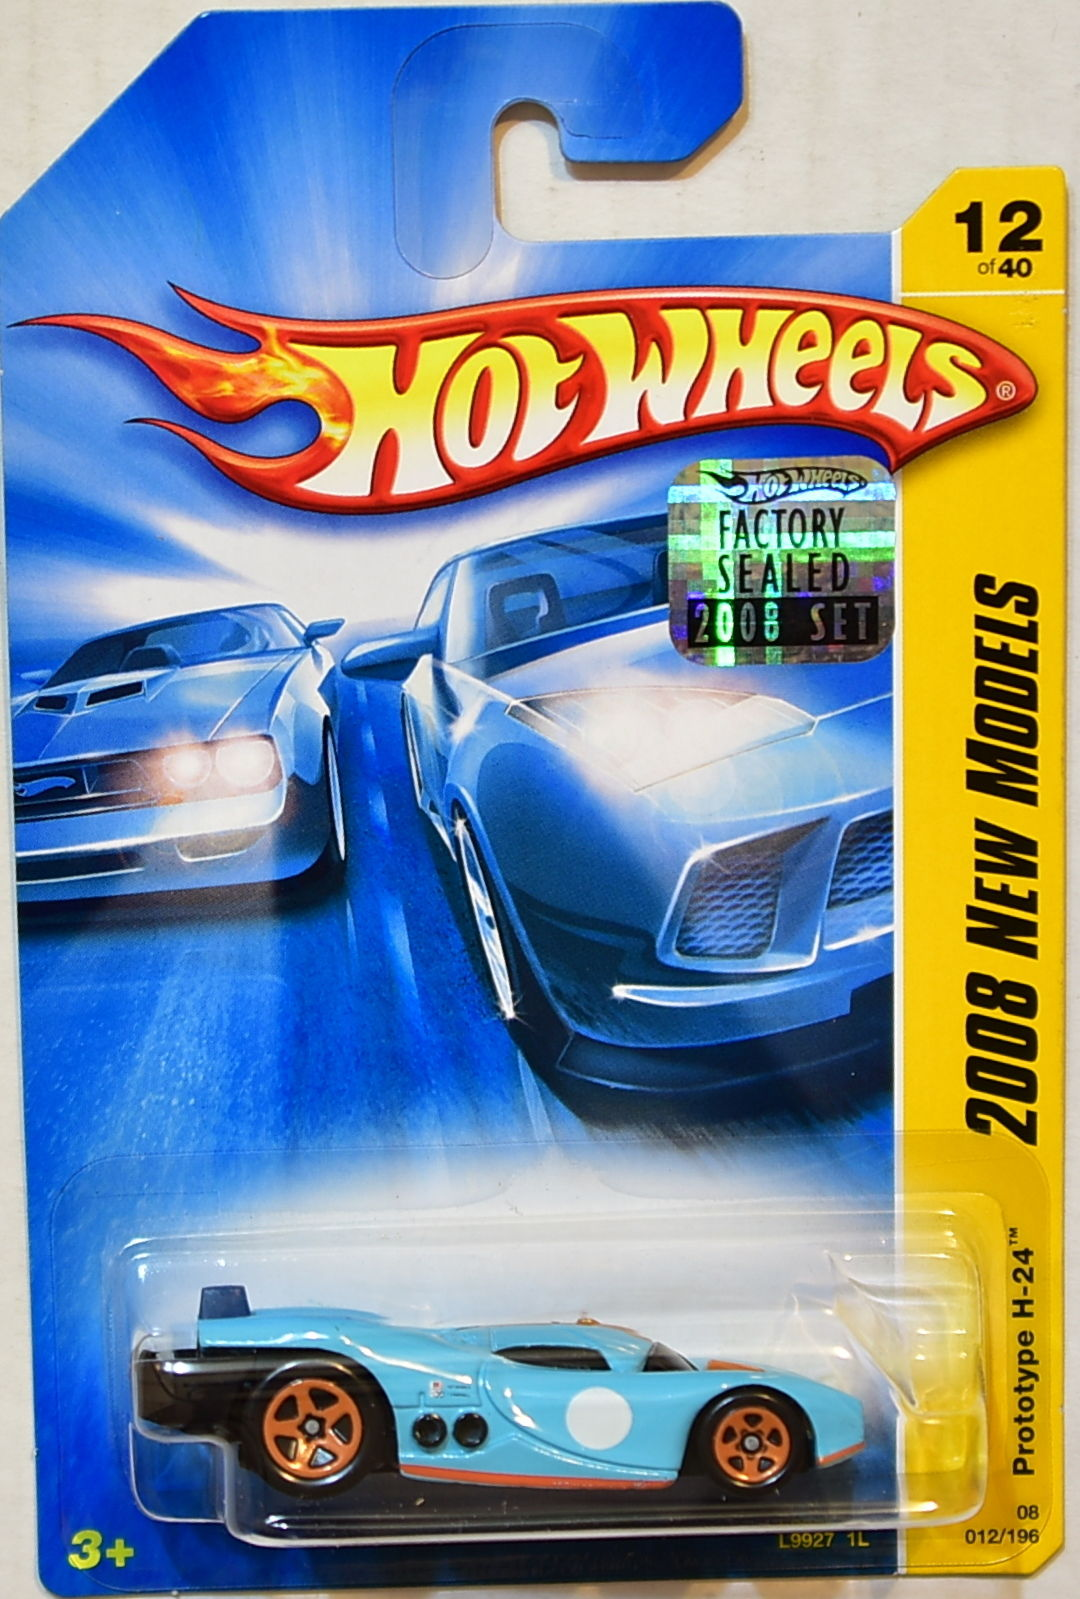 HOT WHEELS 2008 NEW MODELS PROTOTYPE H-24 #12/40 BLUE FACTORY SEALED